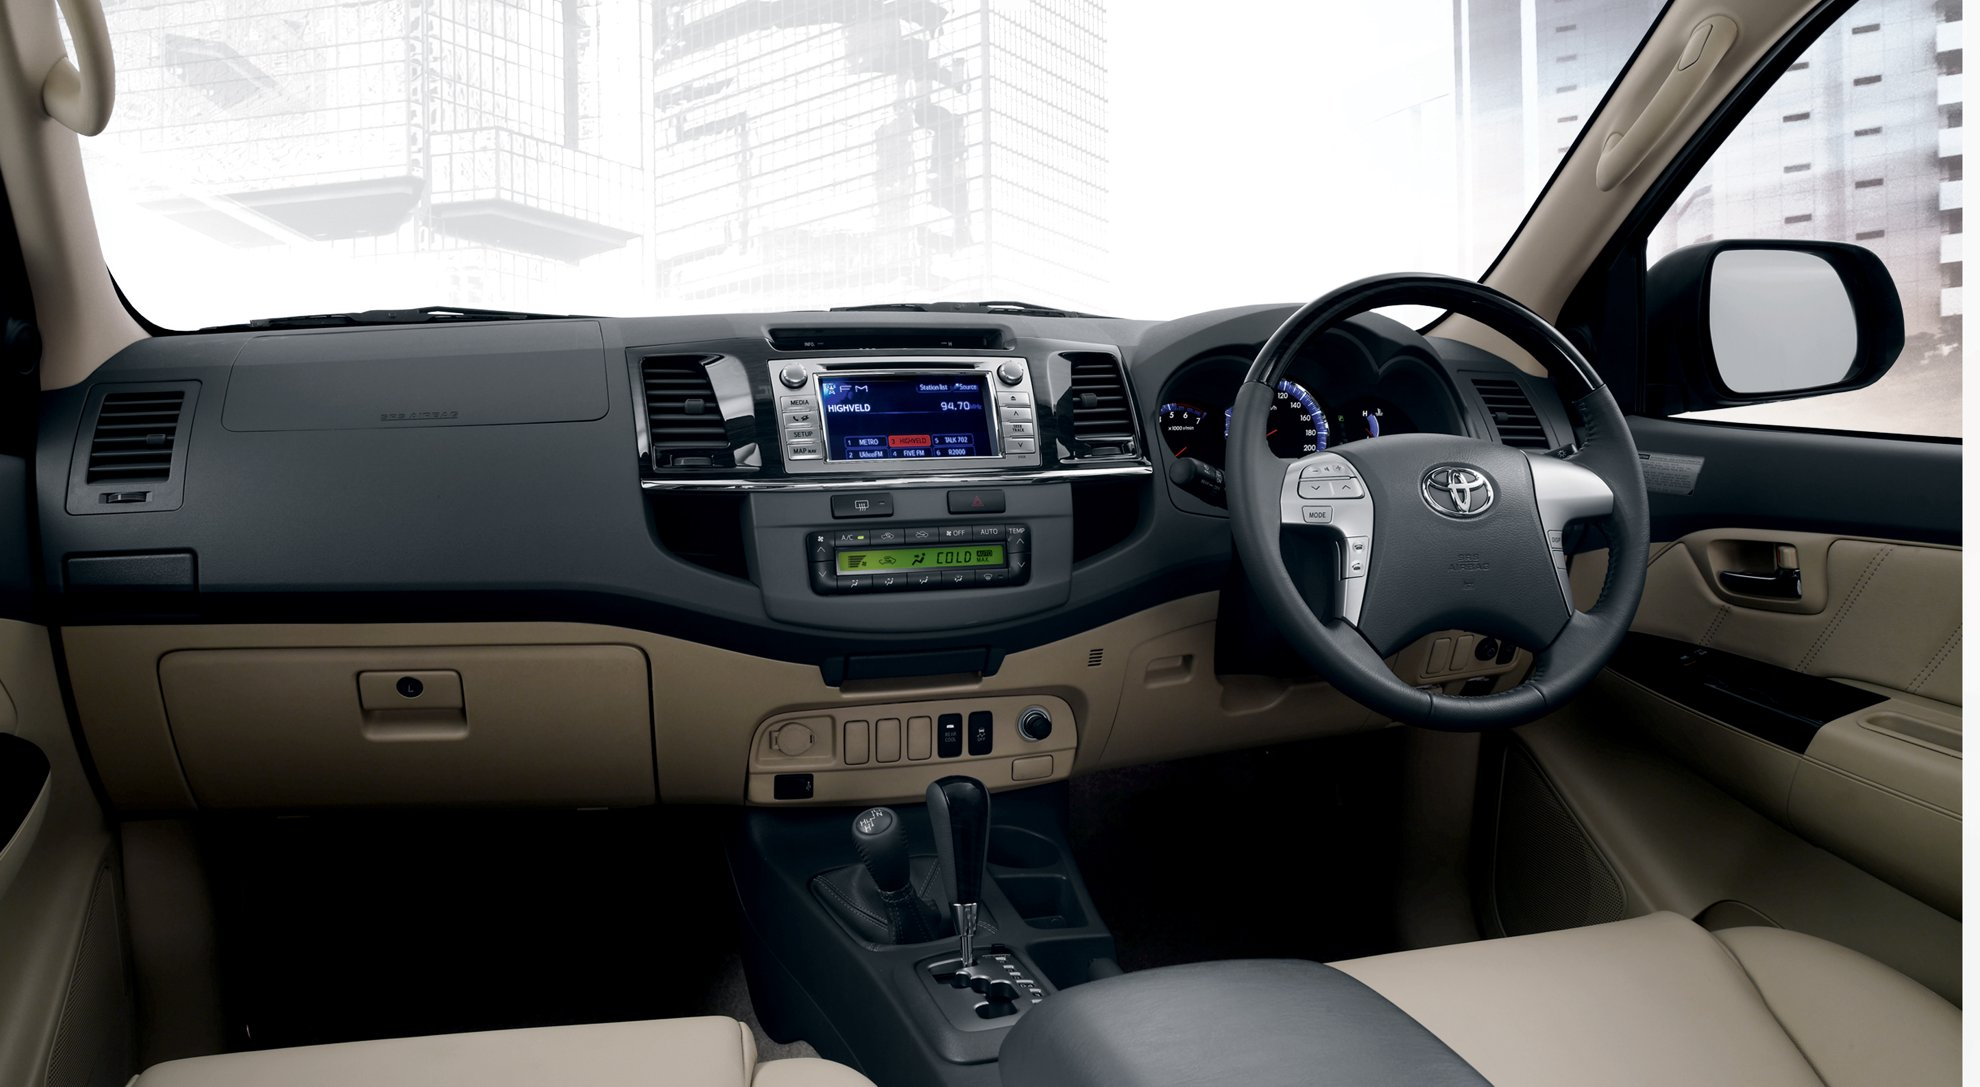 Toyota Fortuner Ltd Interior